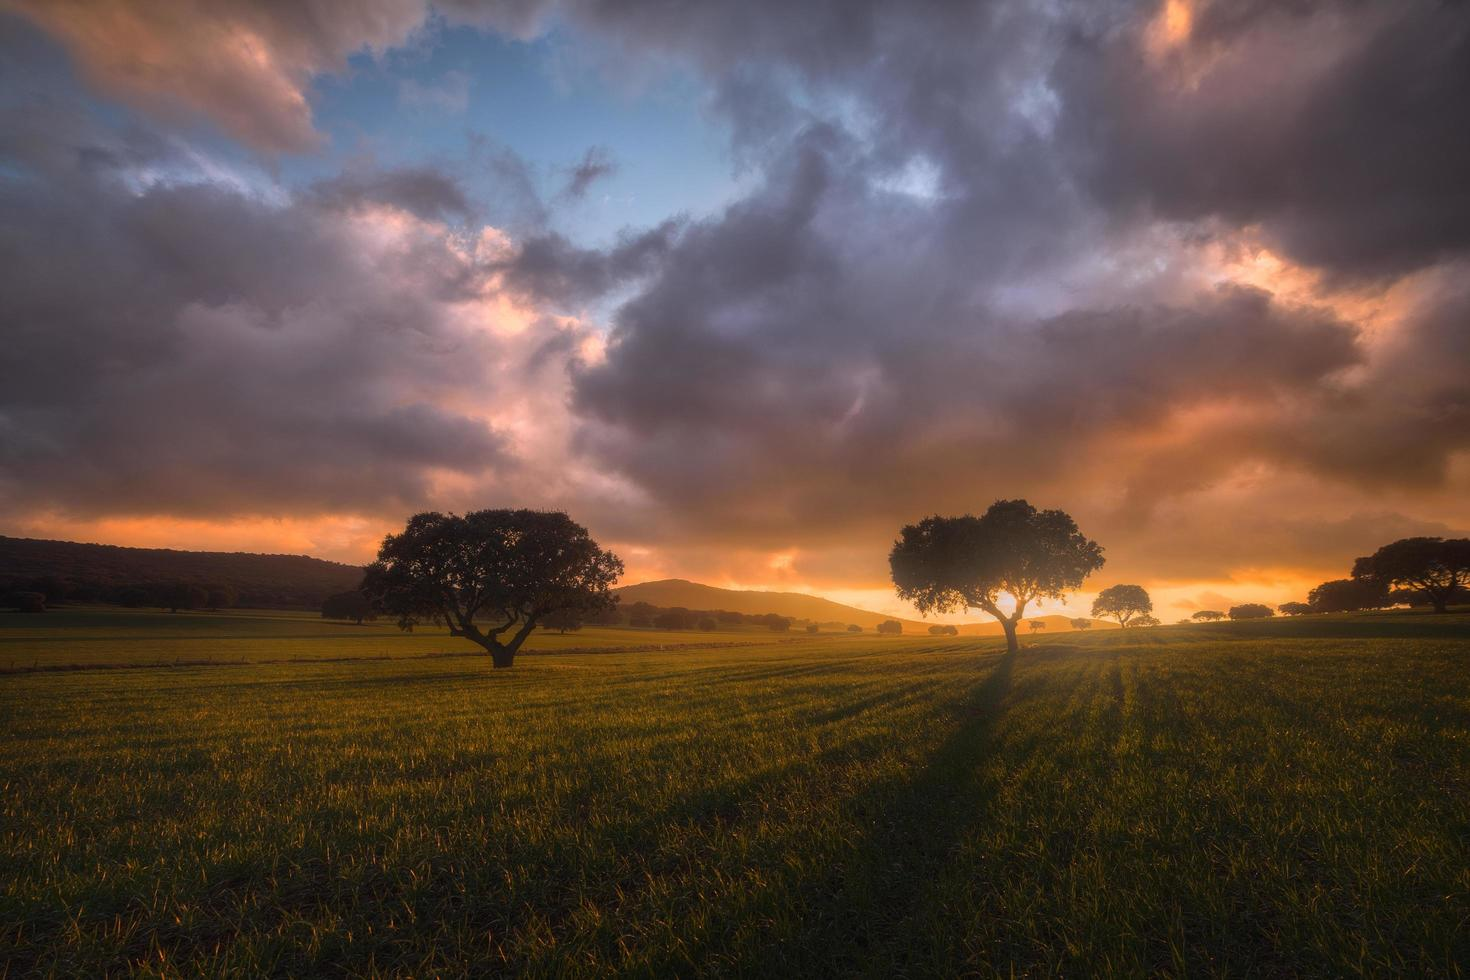 Beautiful warm sunset with bright and colorful clouds and blue sky over a green wheat field with two trees in the background after a storm photo